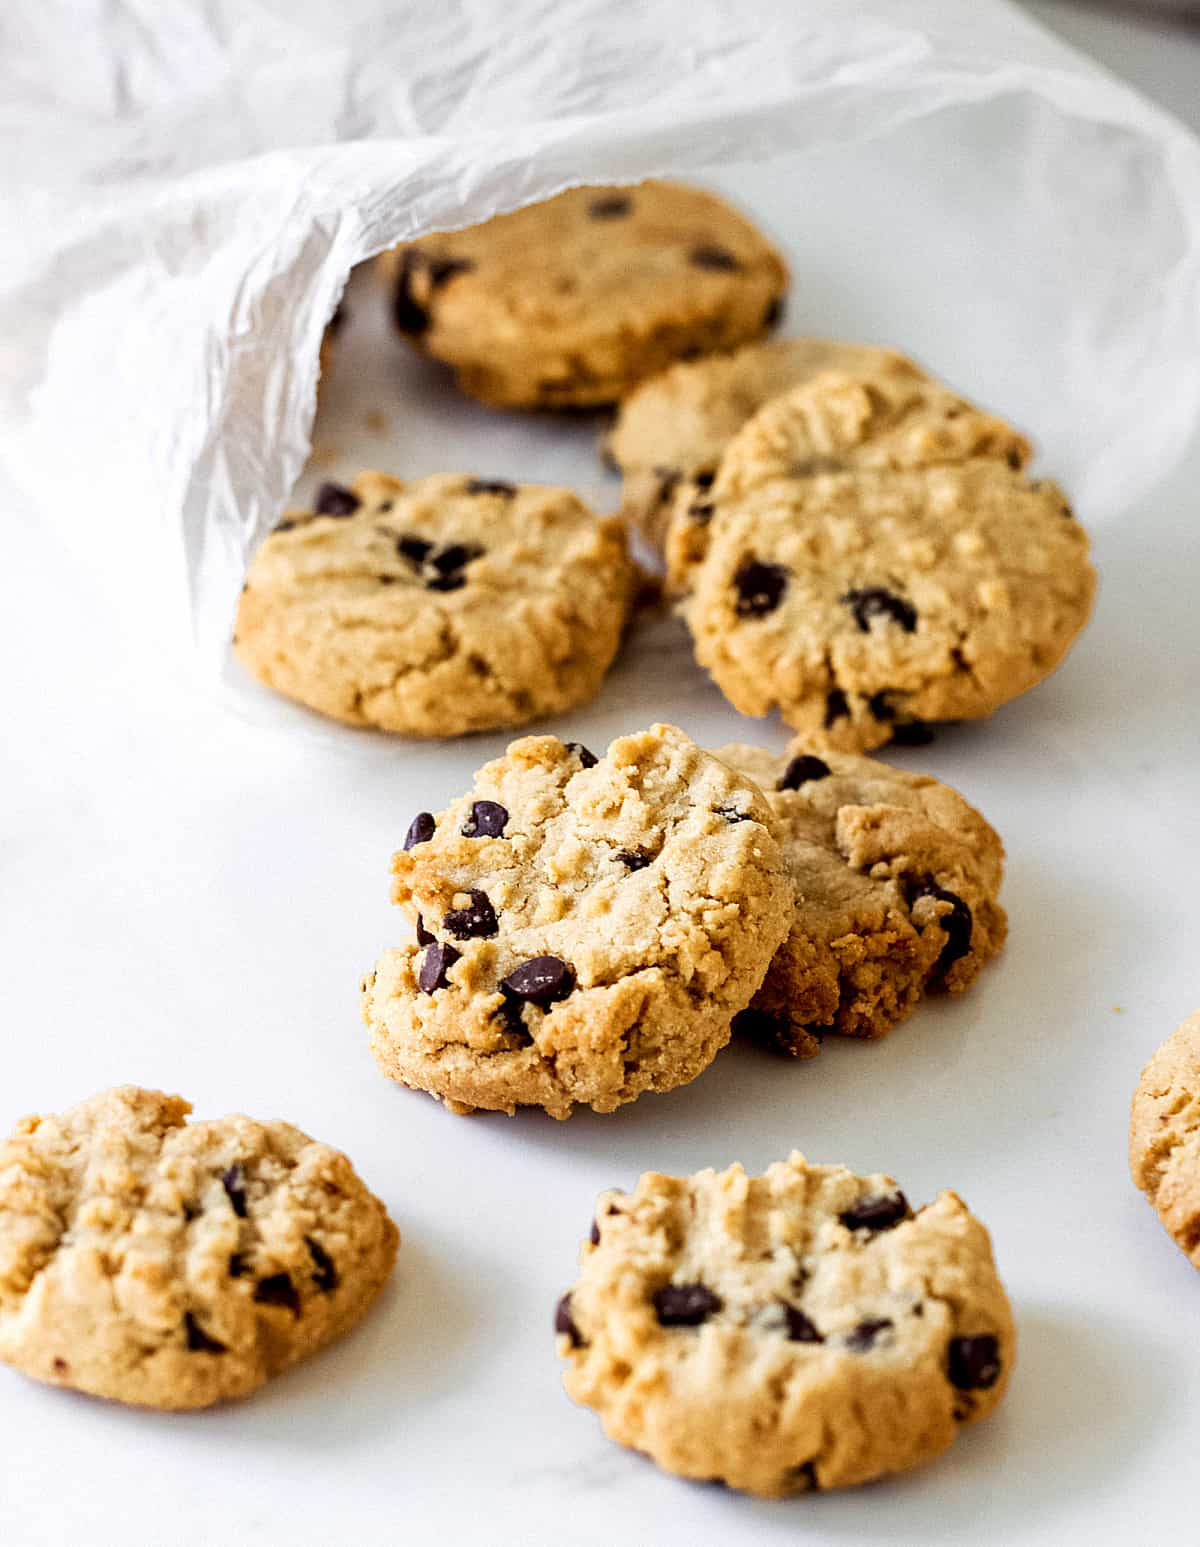 Round cookies with chocolate chips on a white table coming out from a plastic bag